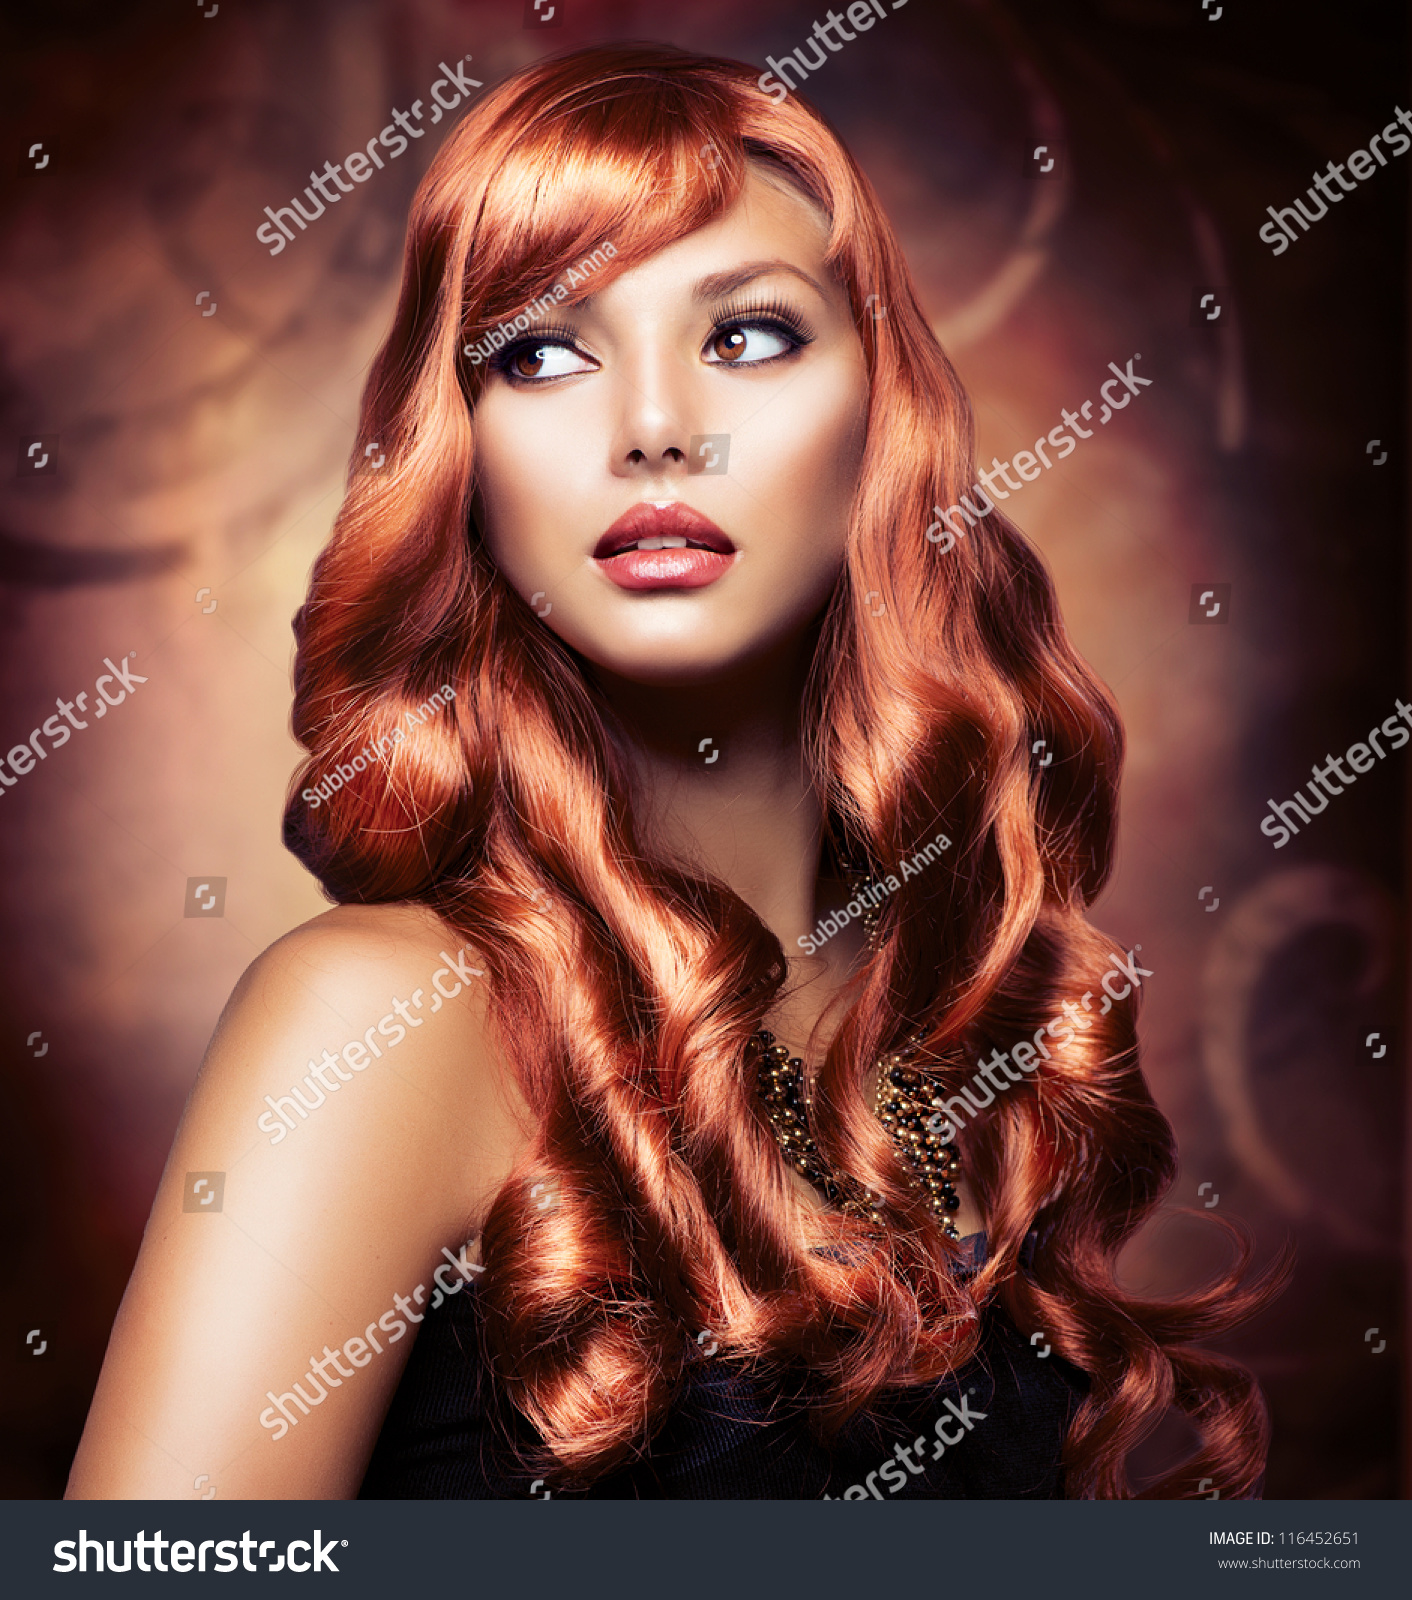 Astounding Portrait Of A Beautiful Girl With Healthy Long Red Hair And Short Hairstyles For Black Women Fulllsitofus